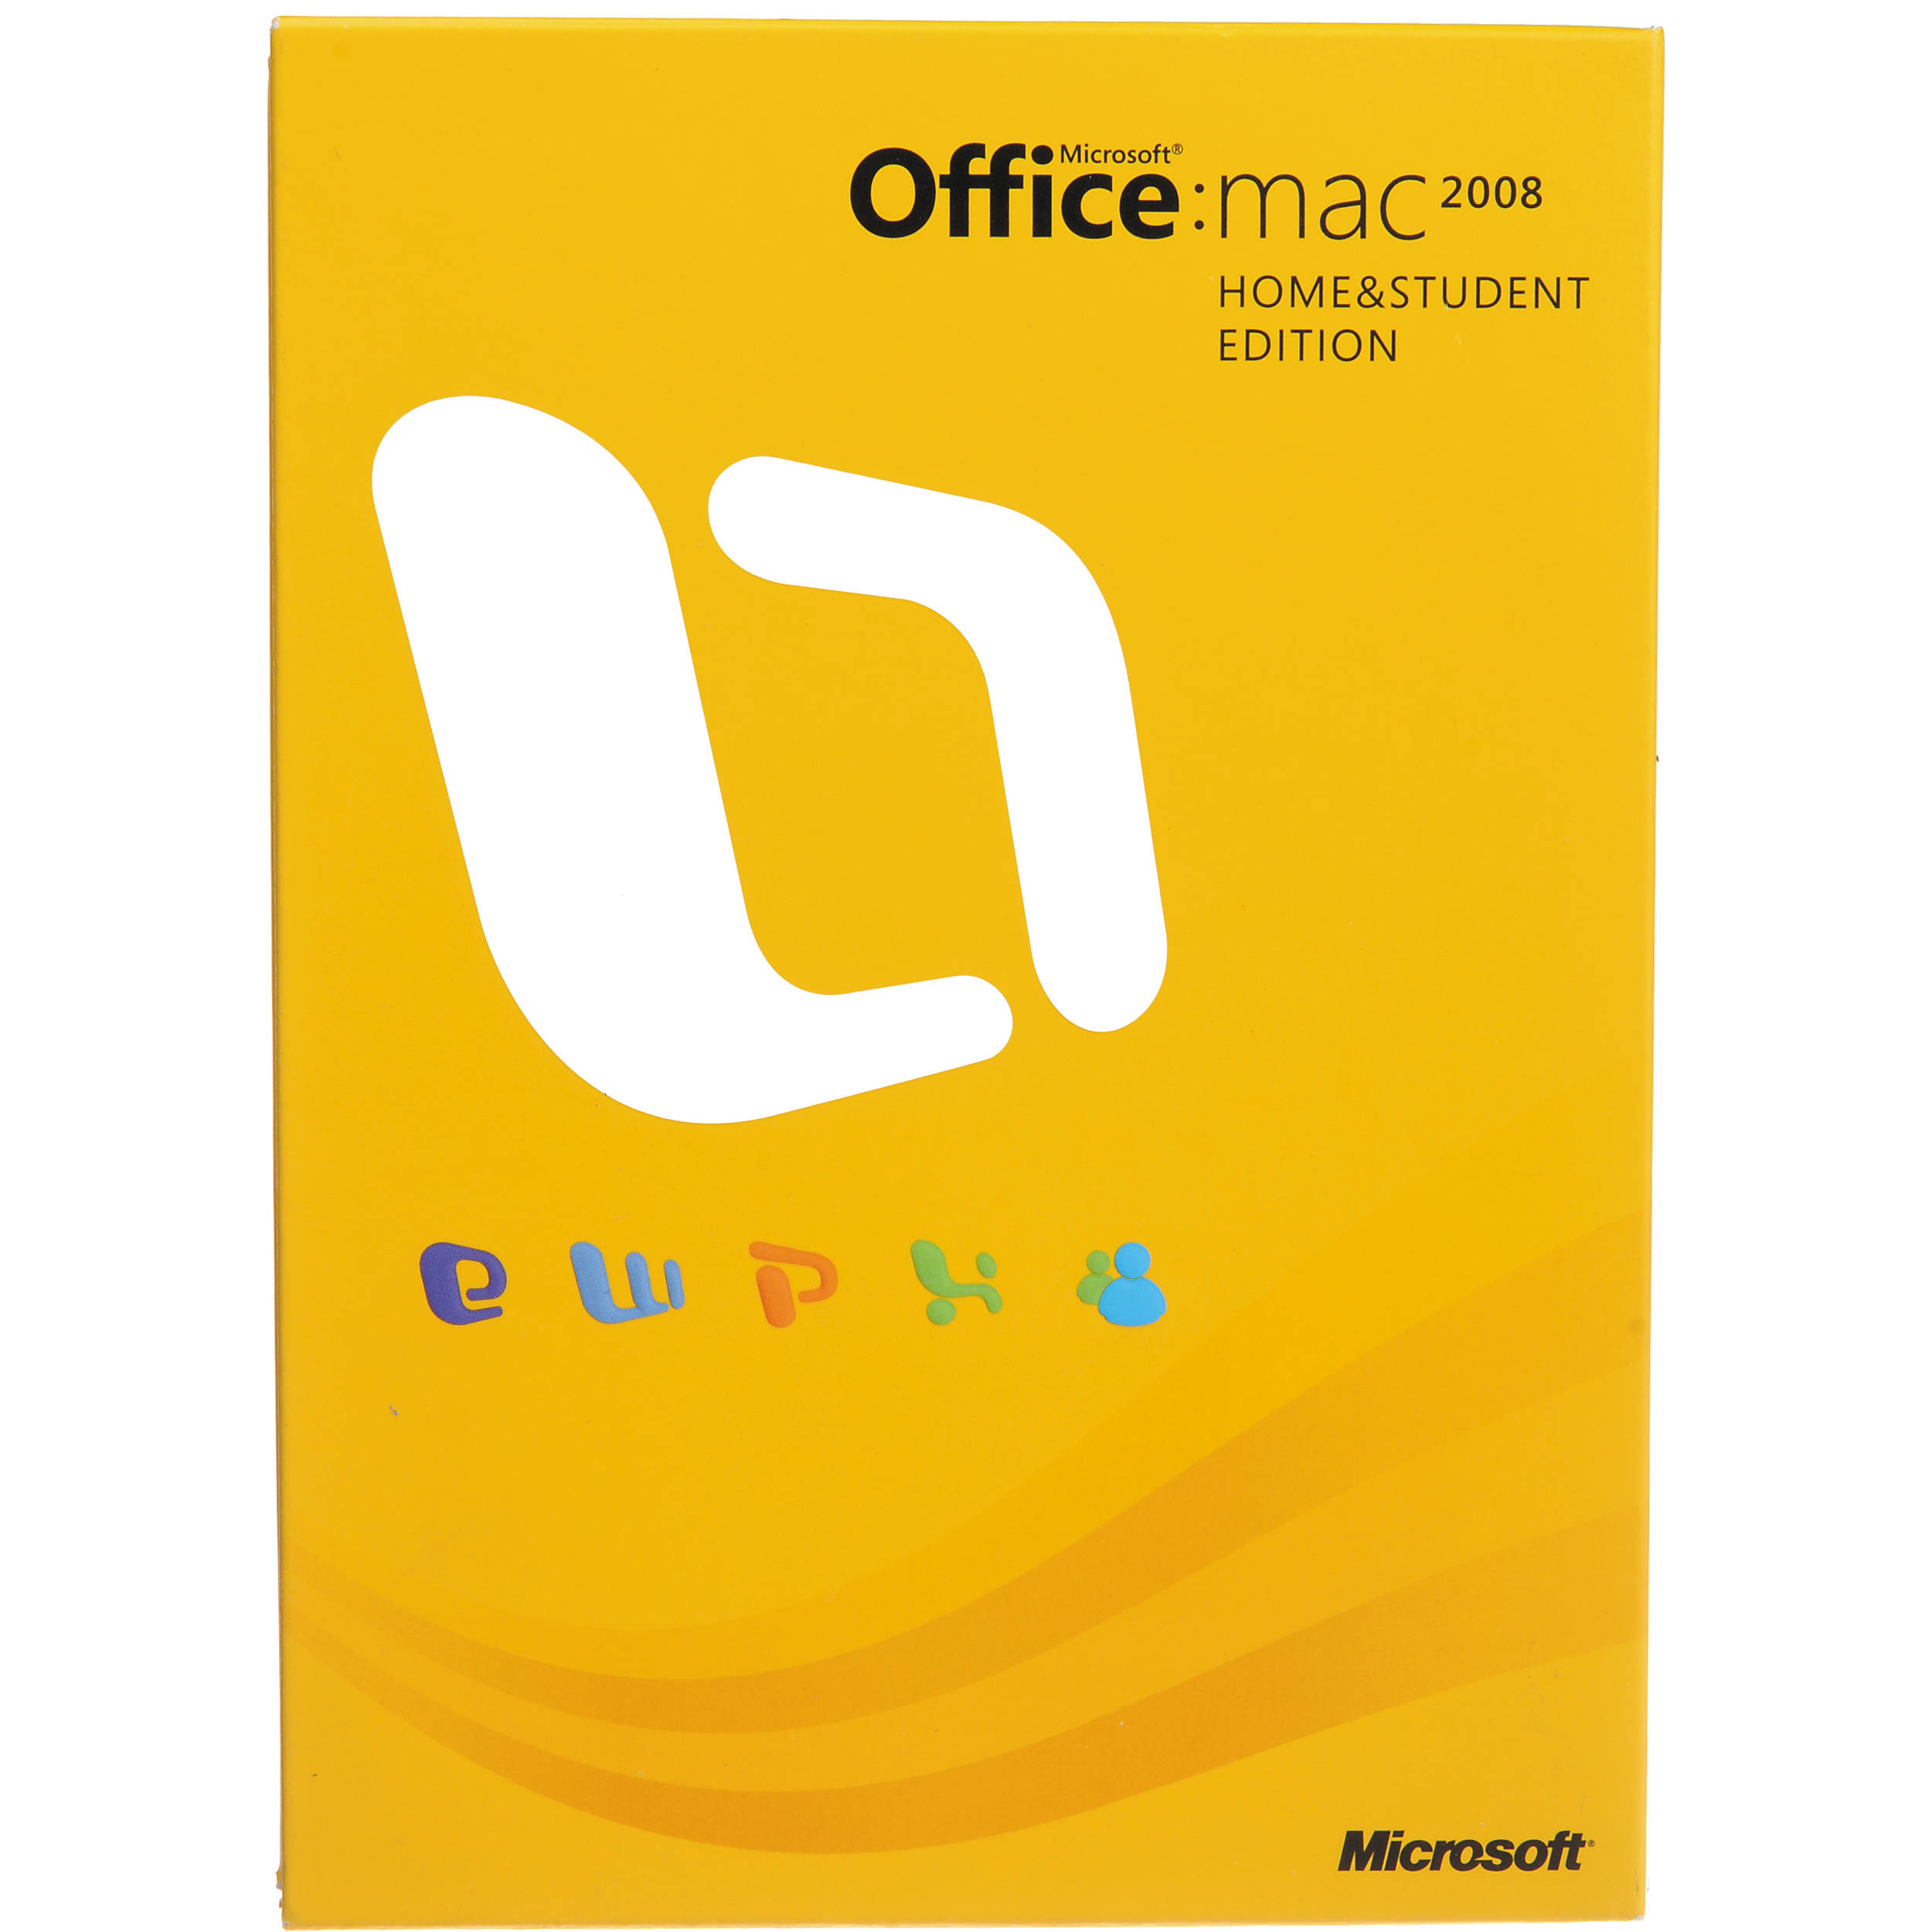 microsoft office 2008 for mac home and student edition 3 computer license